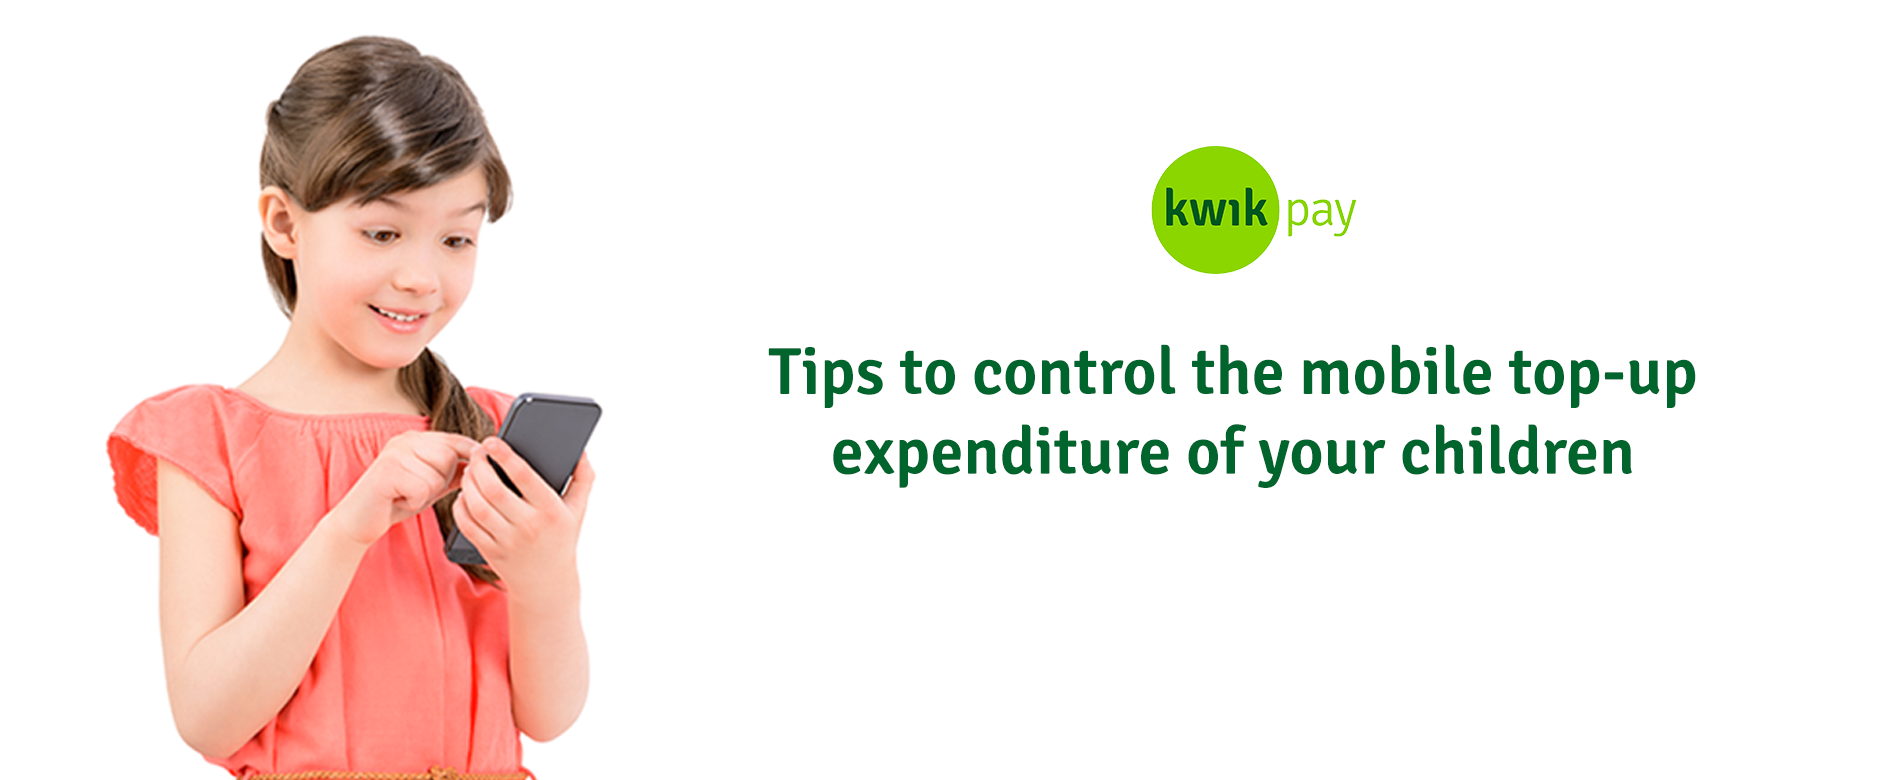 5 Important tips to control the mobile top-up expenditure of your Children